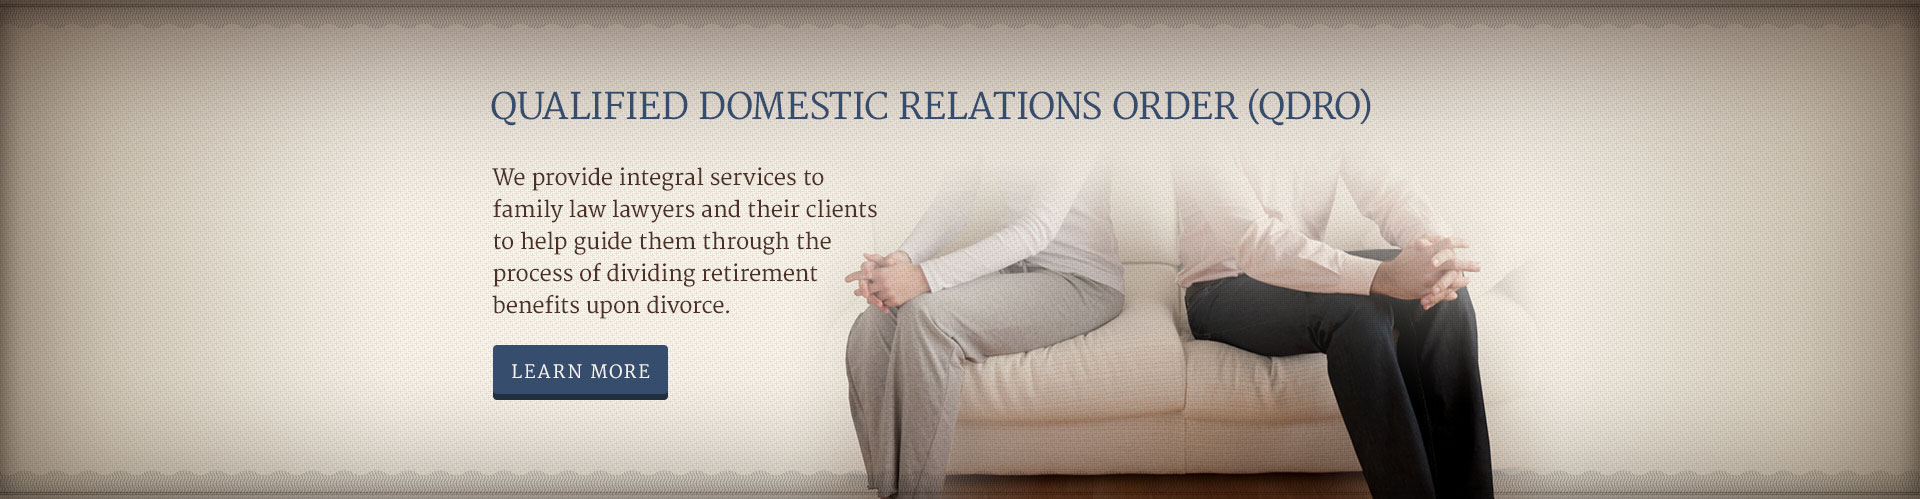 QUALIFIED DOMESTIC RELATIONS ORDER (QDRO) - We provide integral services to family law lawyers and their clients to help guide them through the process of dividing retirement benefits upon divorce.